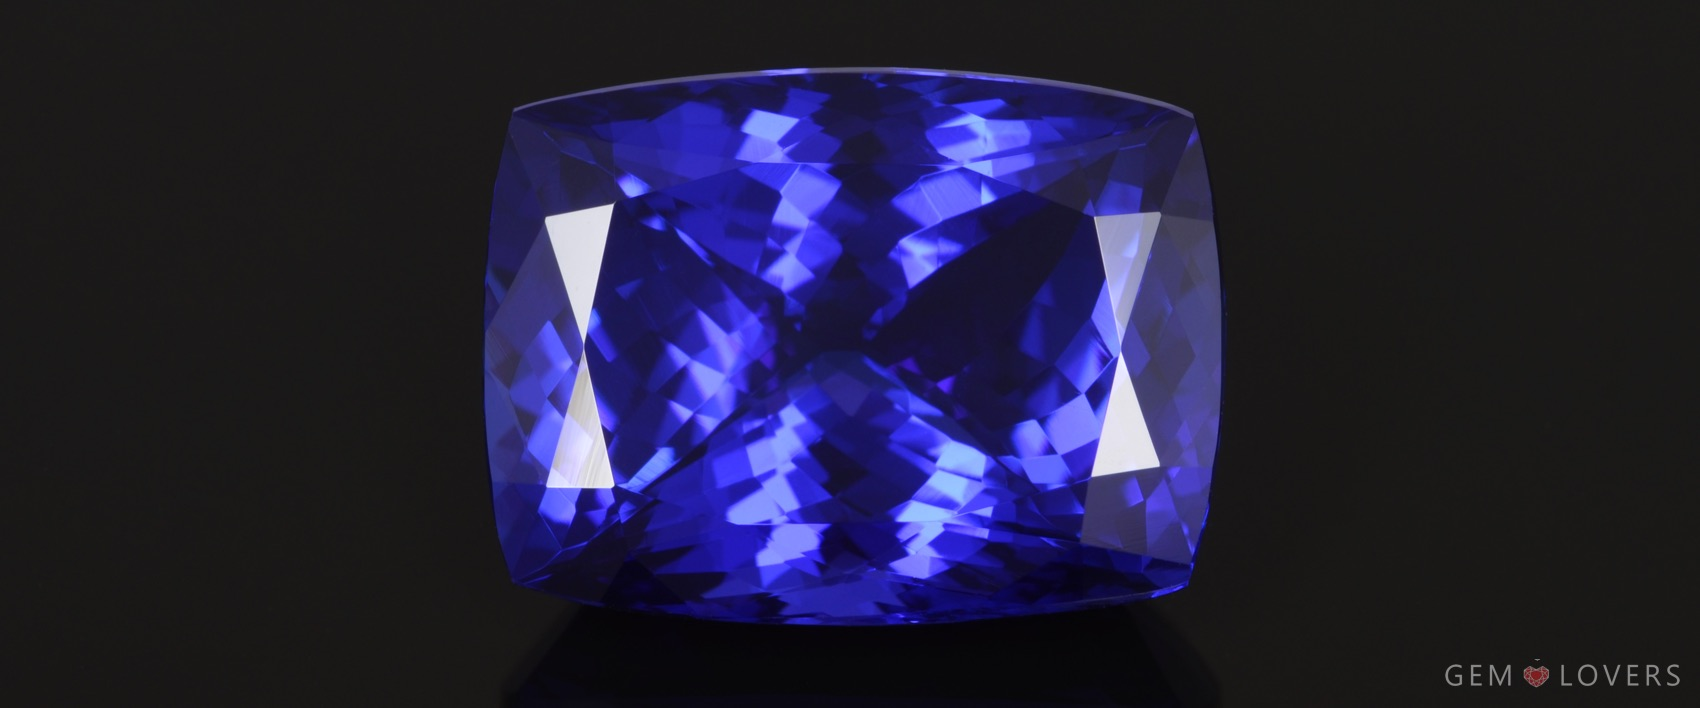 natural tanzanite cushion from Gem Lovers collection